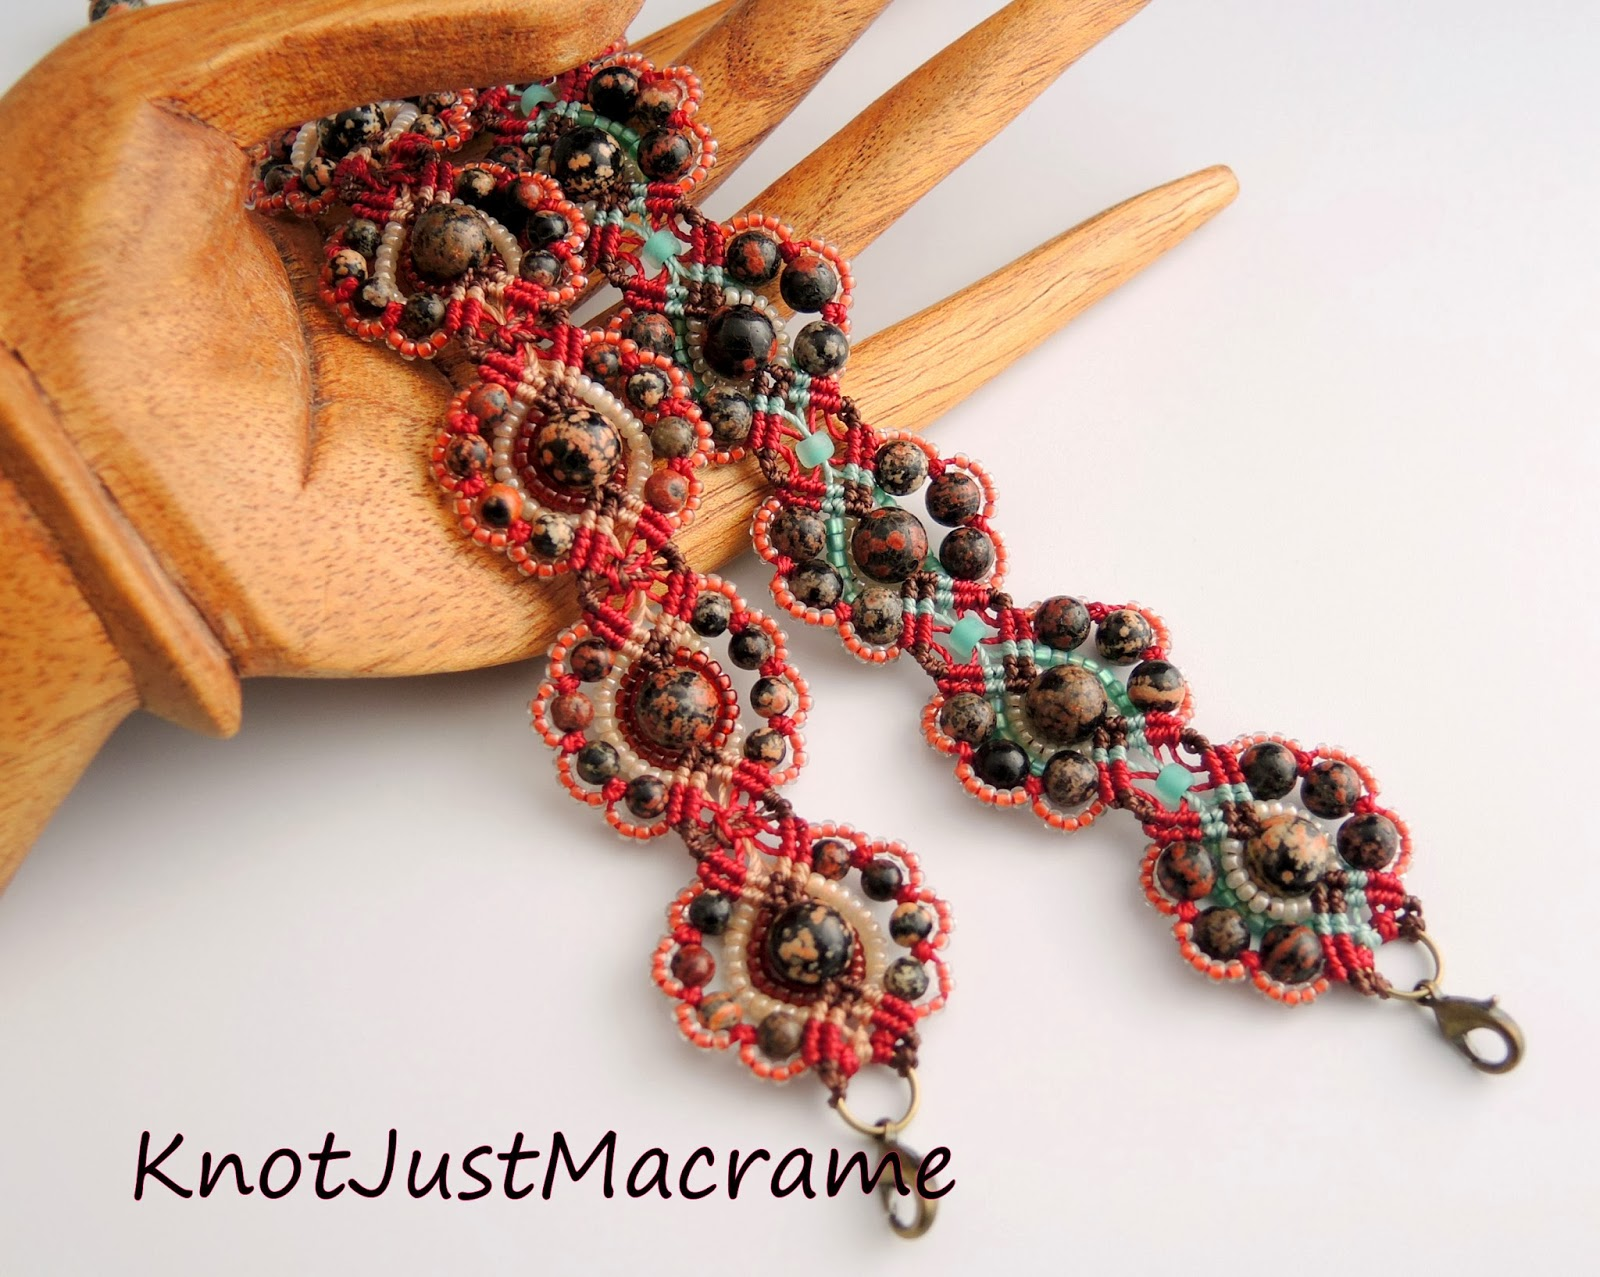 Two micro macrame bracelets knotted by Sherri Stokey